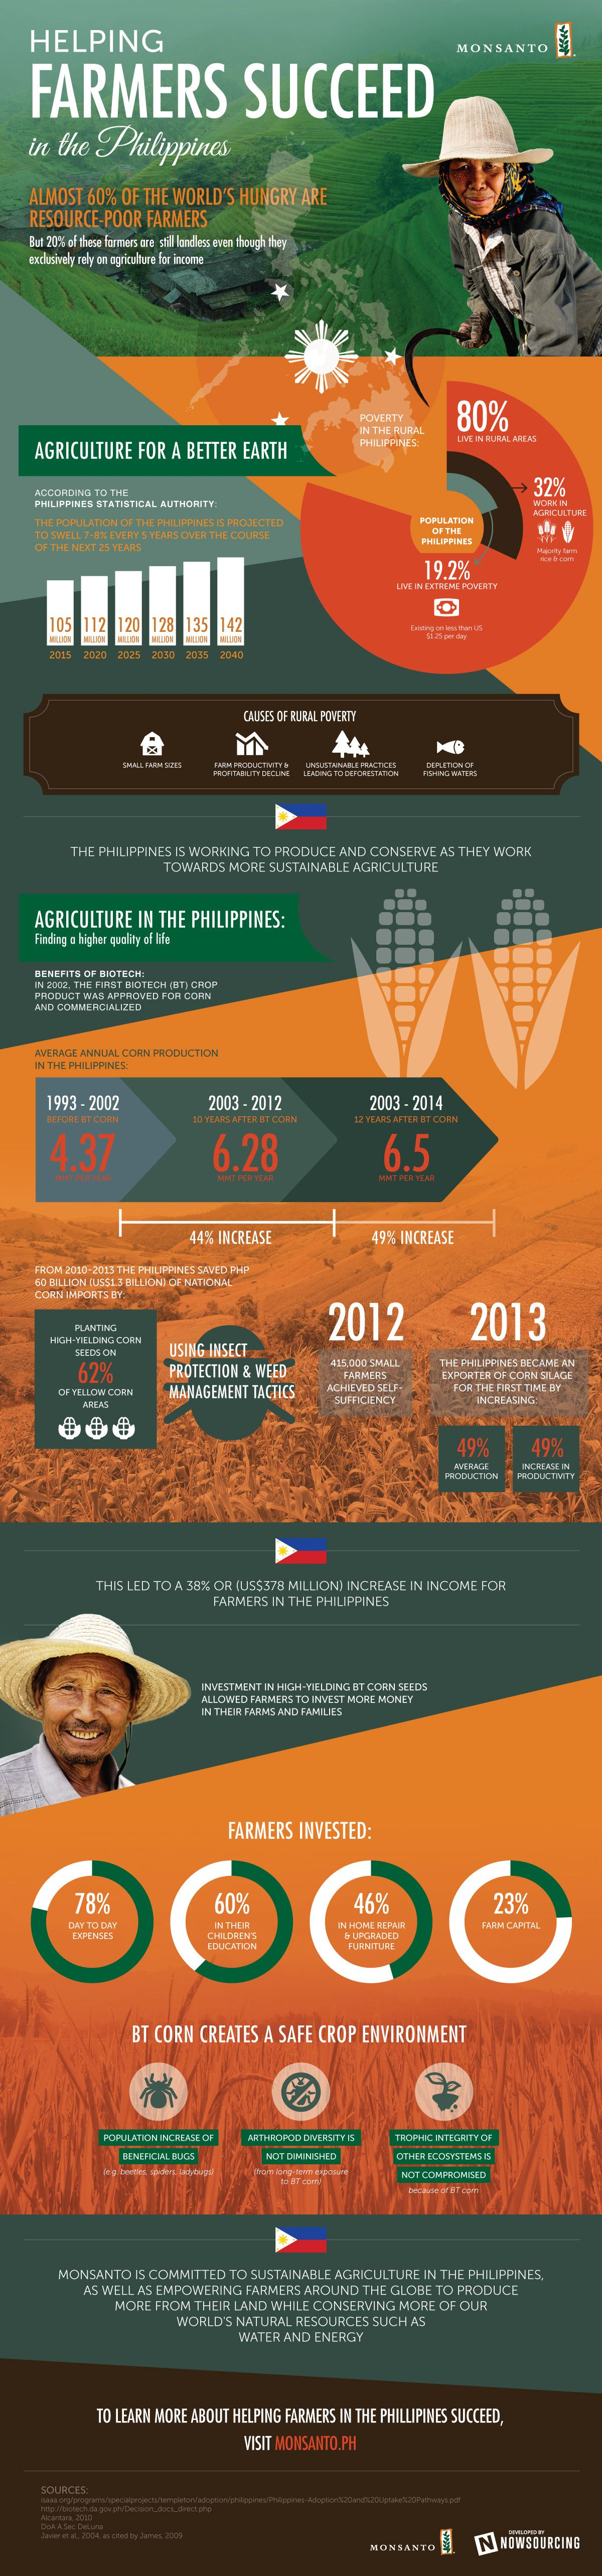 Helping Farmers Succeed in the Philippines #Infographic